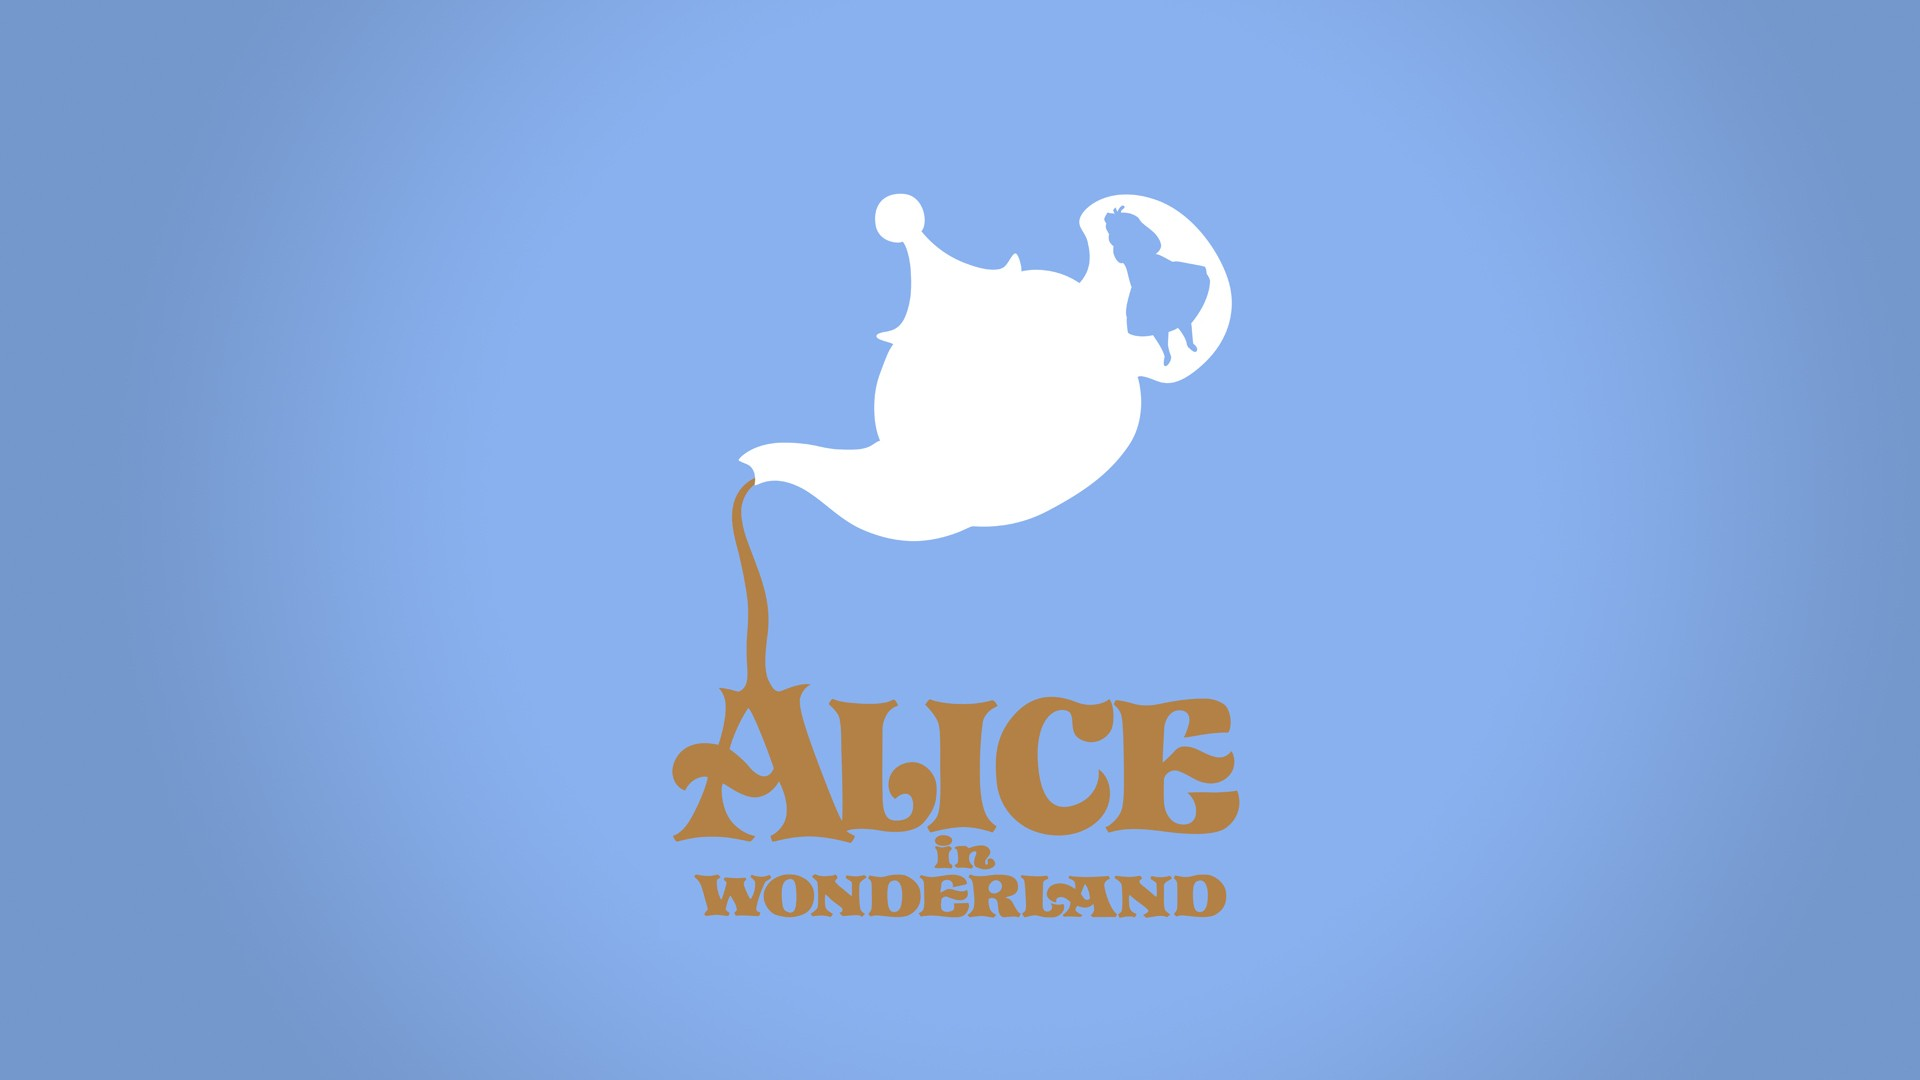 alice in wonderland wallpaper iphone 6